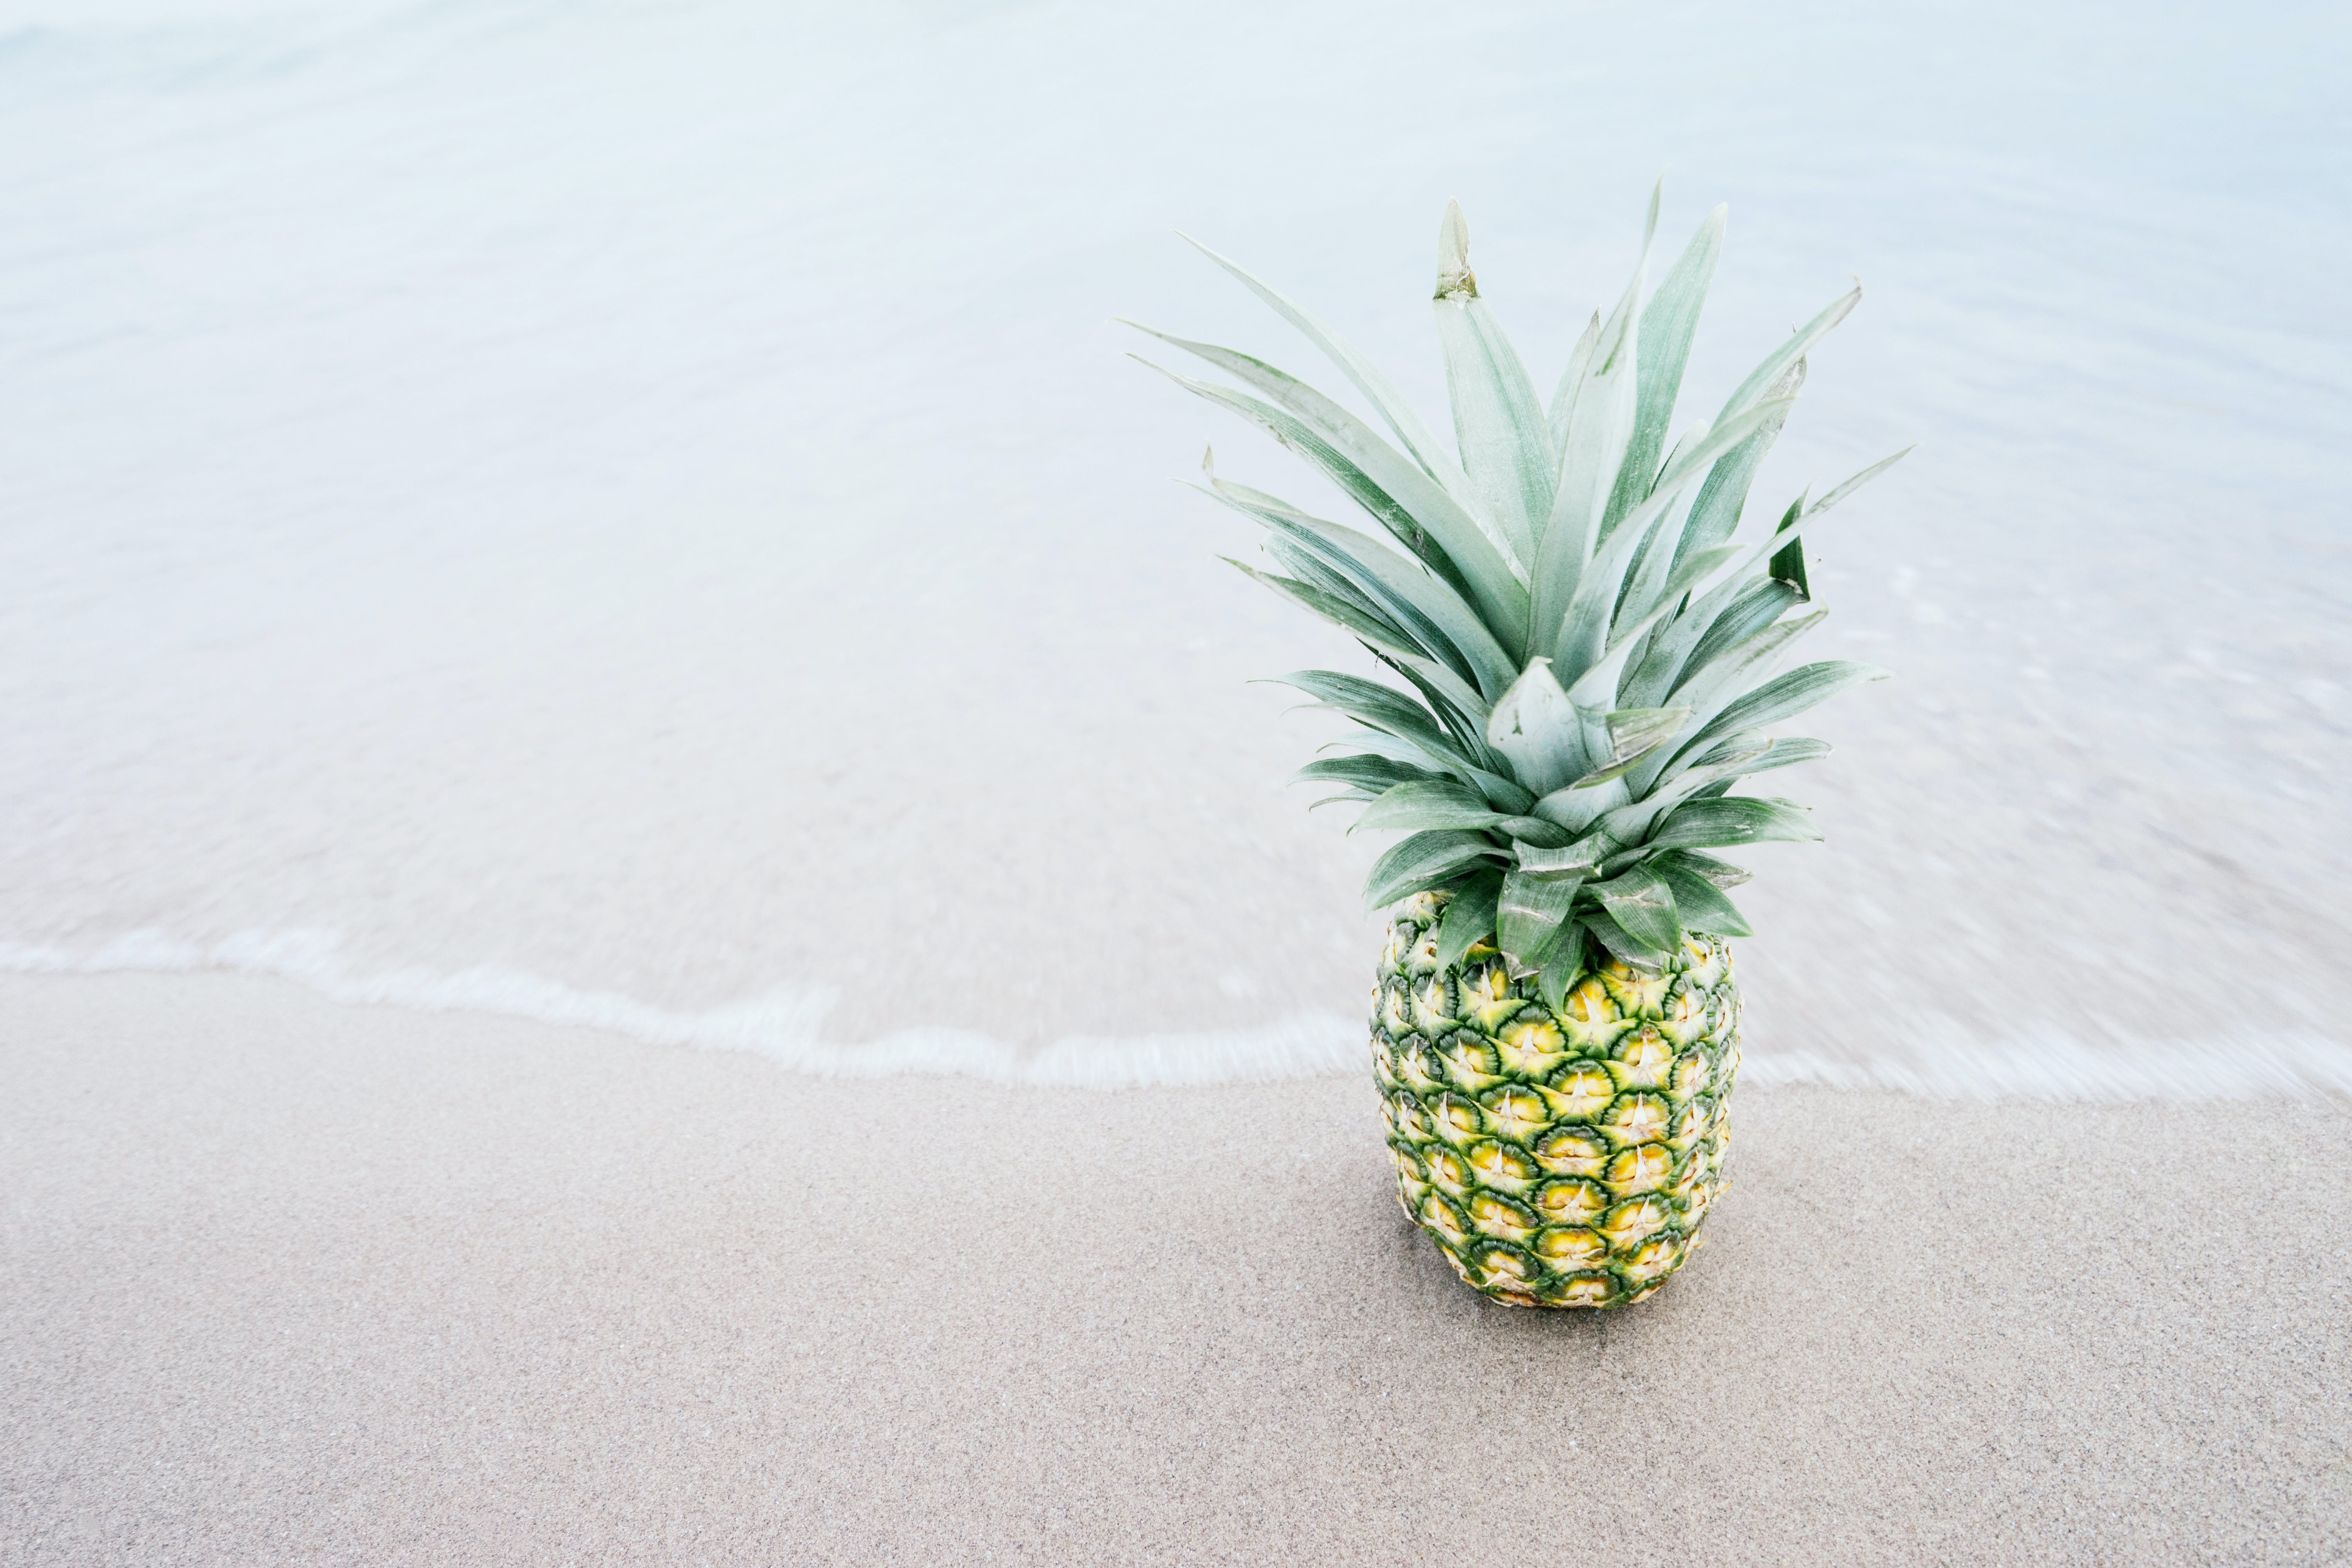 Pineapple Fruit on Shore